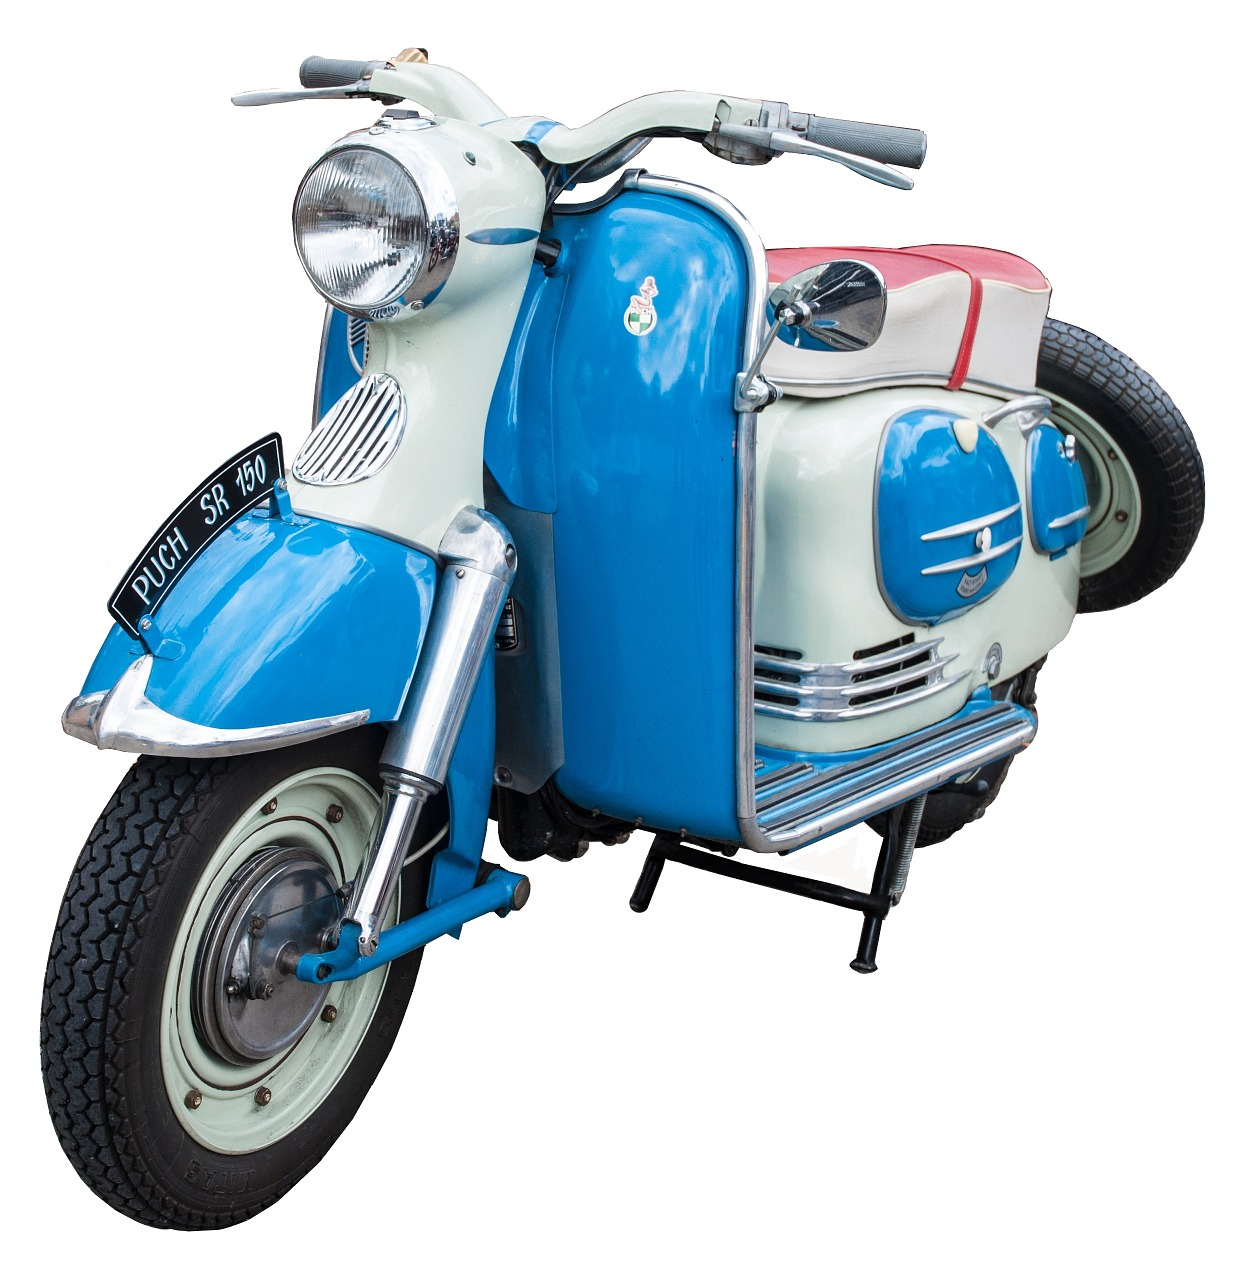 motor-scooter-917668_1280